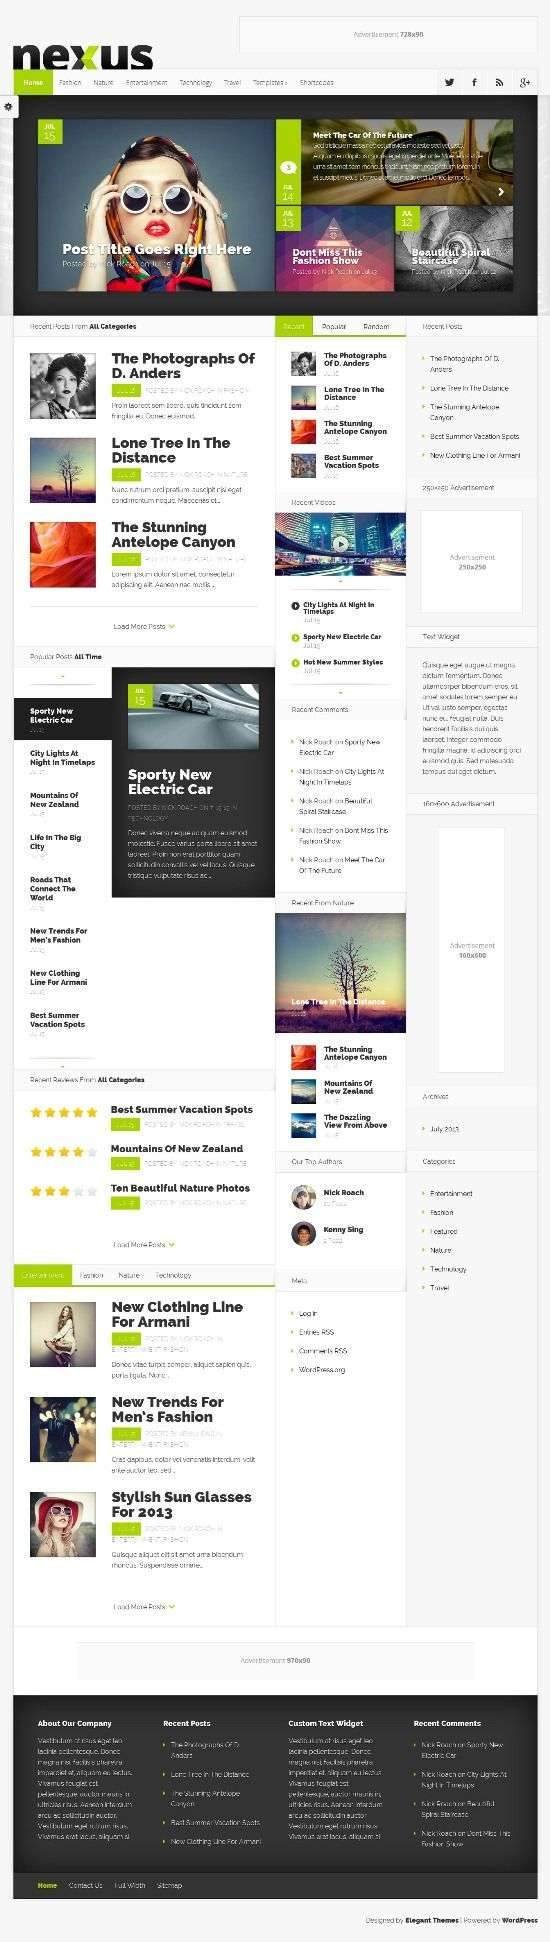 nexus elegantthemes avjthemescom 01 - Nexus WordPress Theme